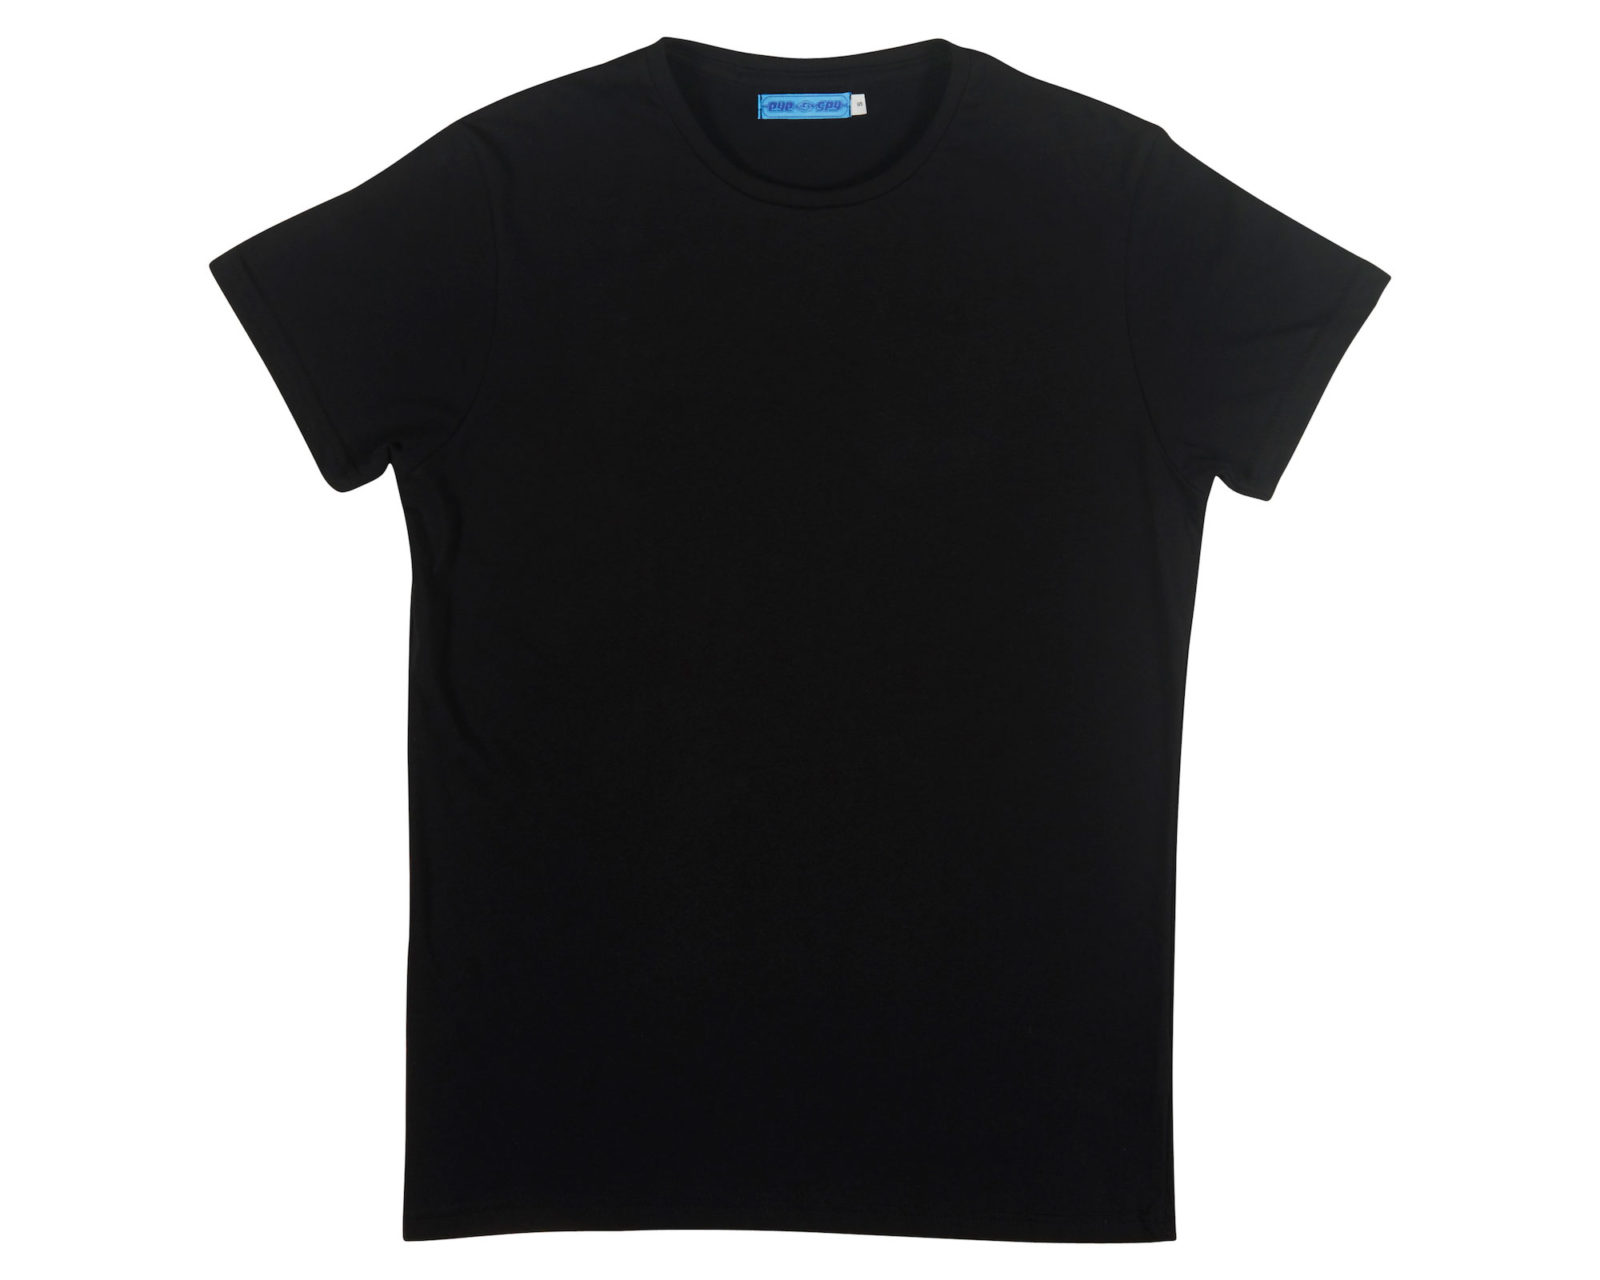 Qualitops Mens Short Sleeve Tee Cotton Australian made clothing